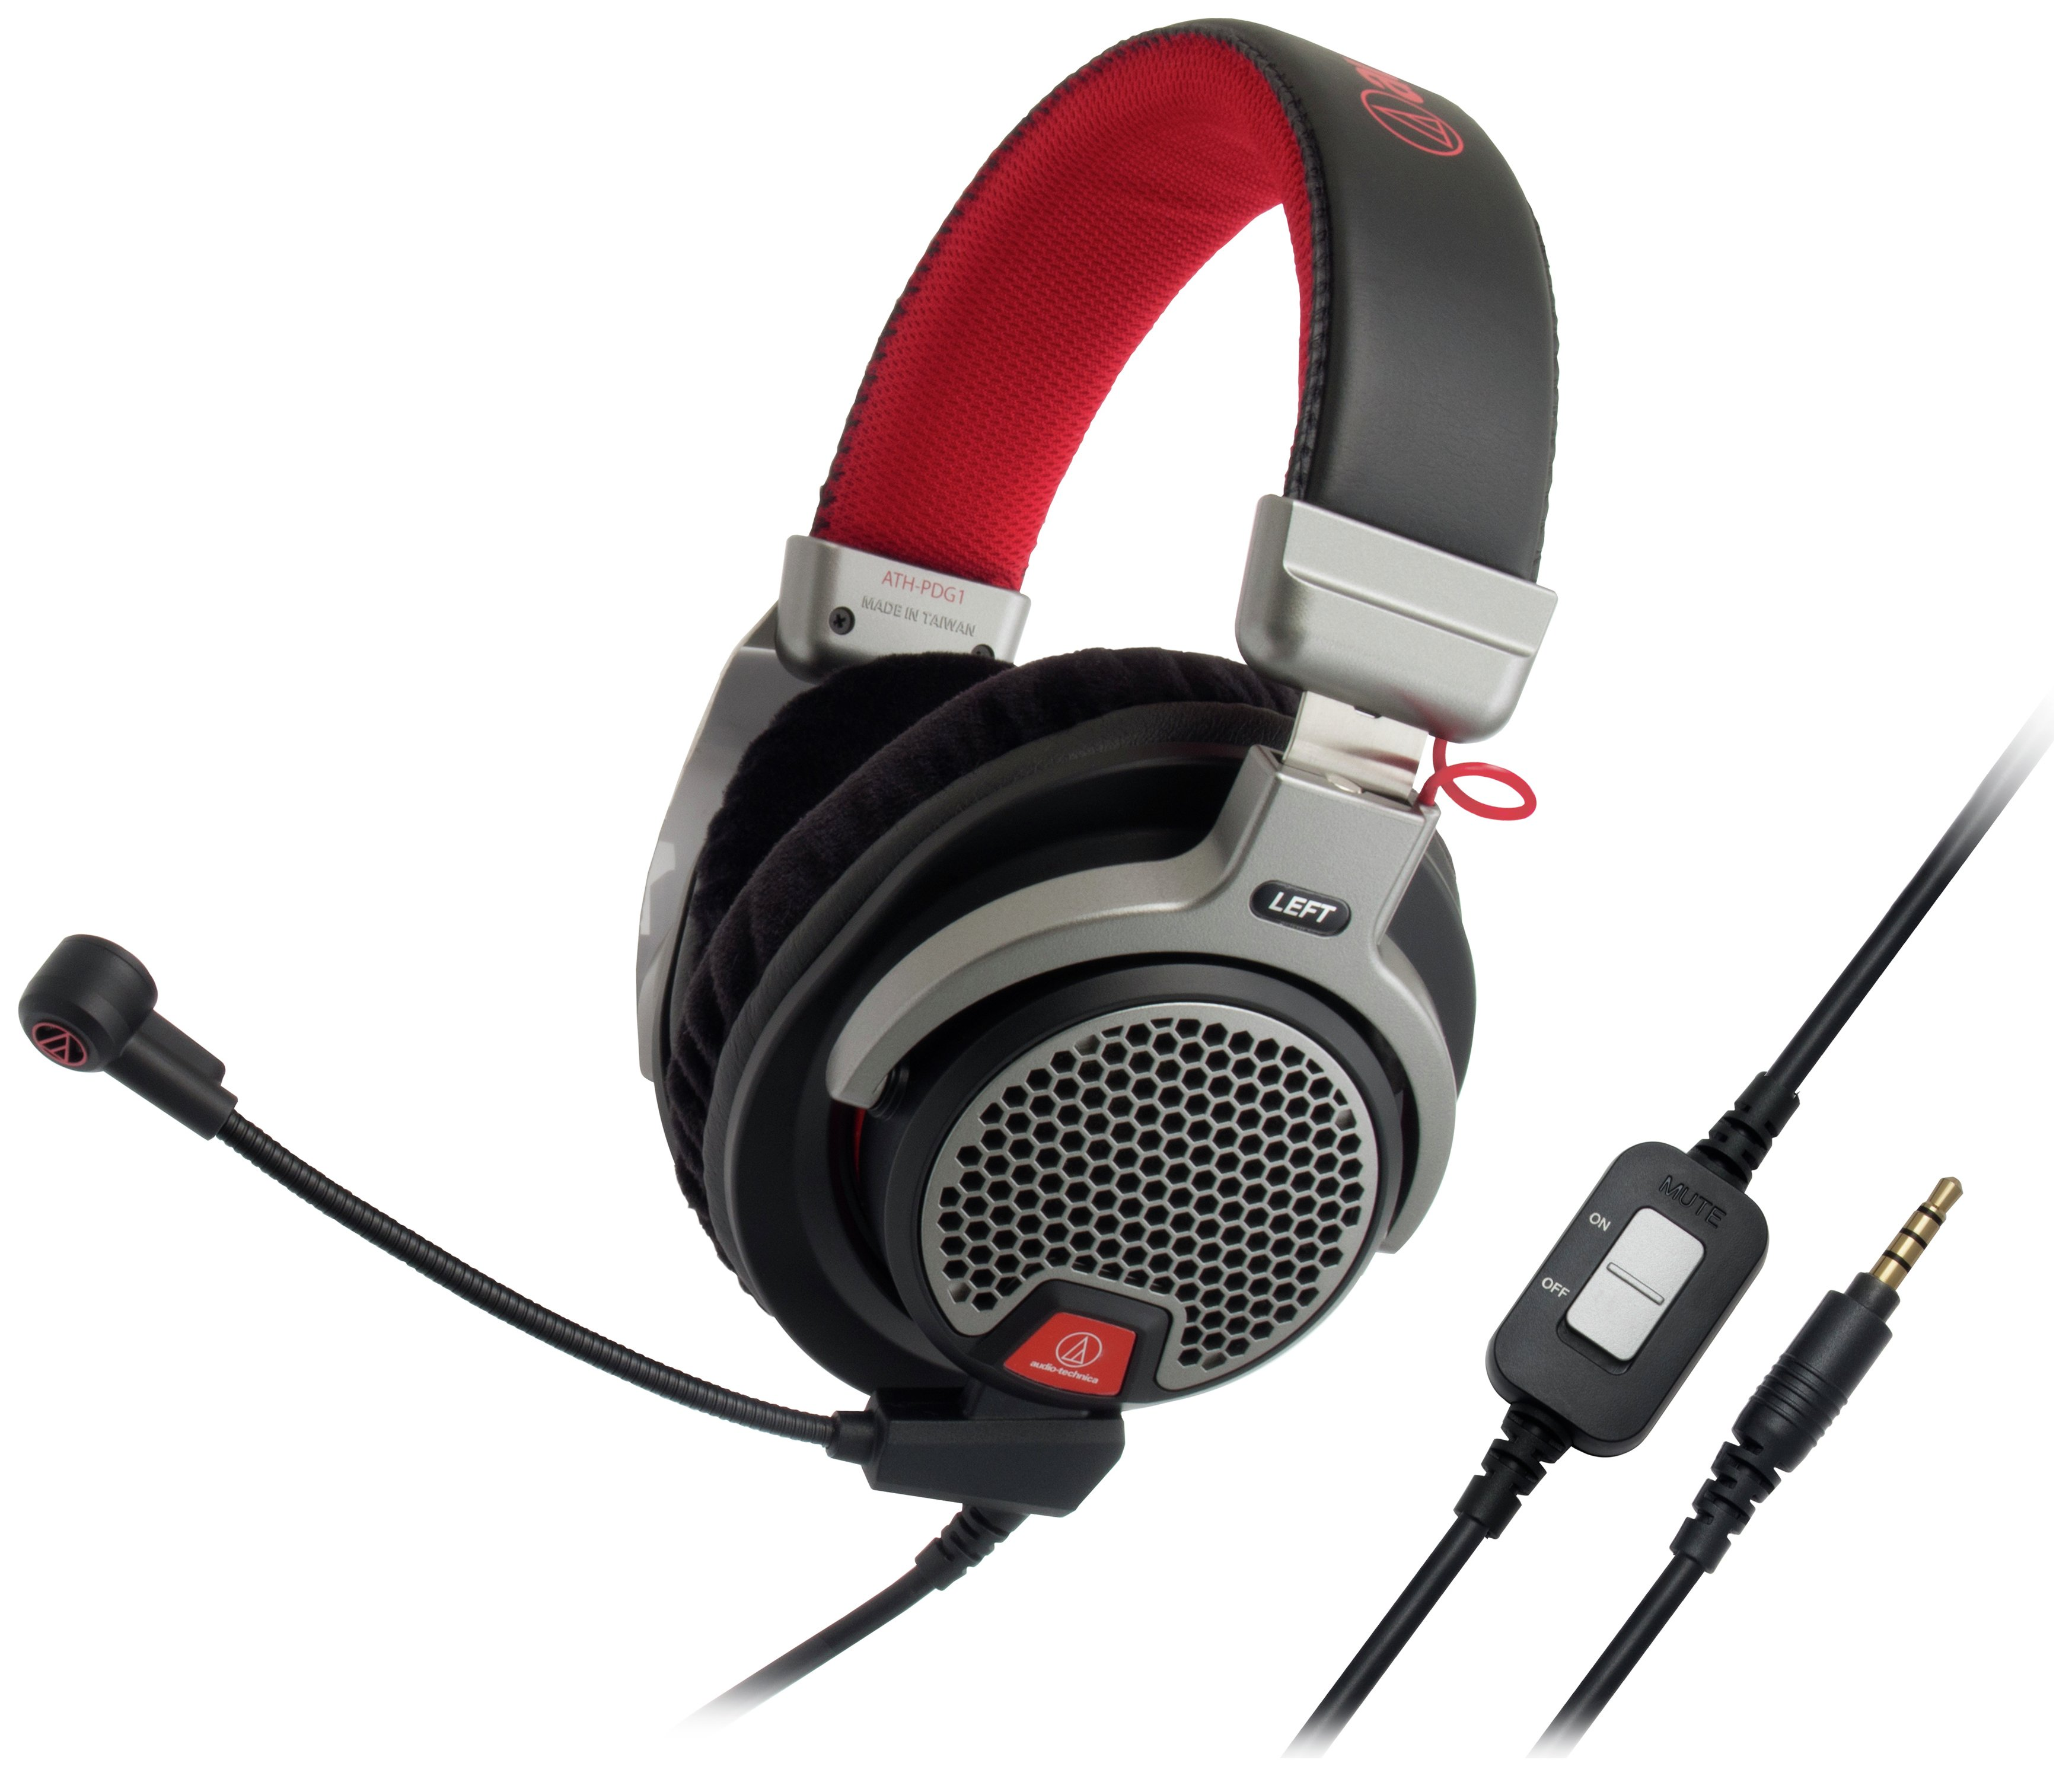 Image of Audio Technica ATH-PDG1 Gaming Headset.